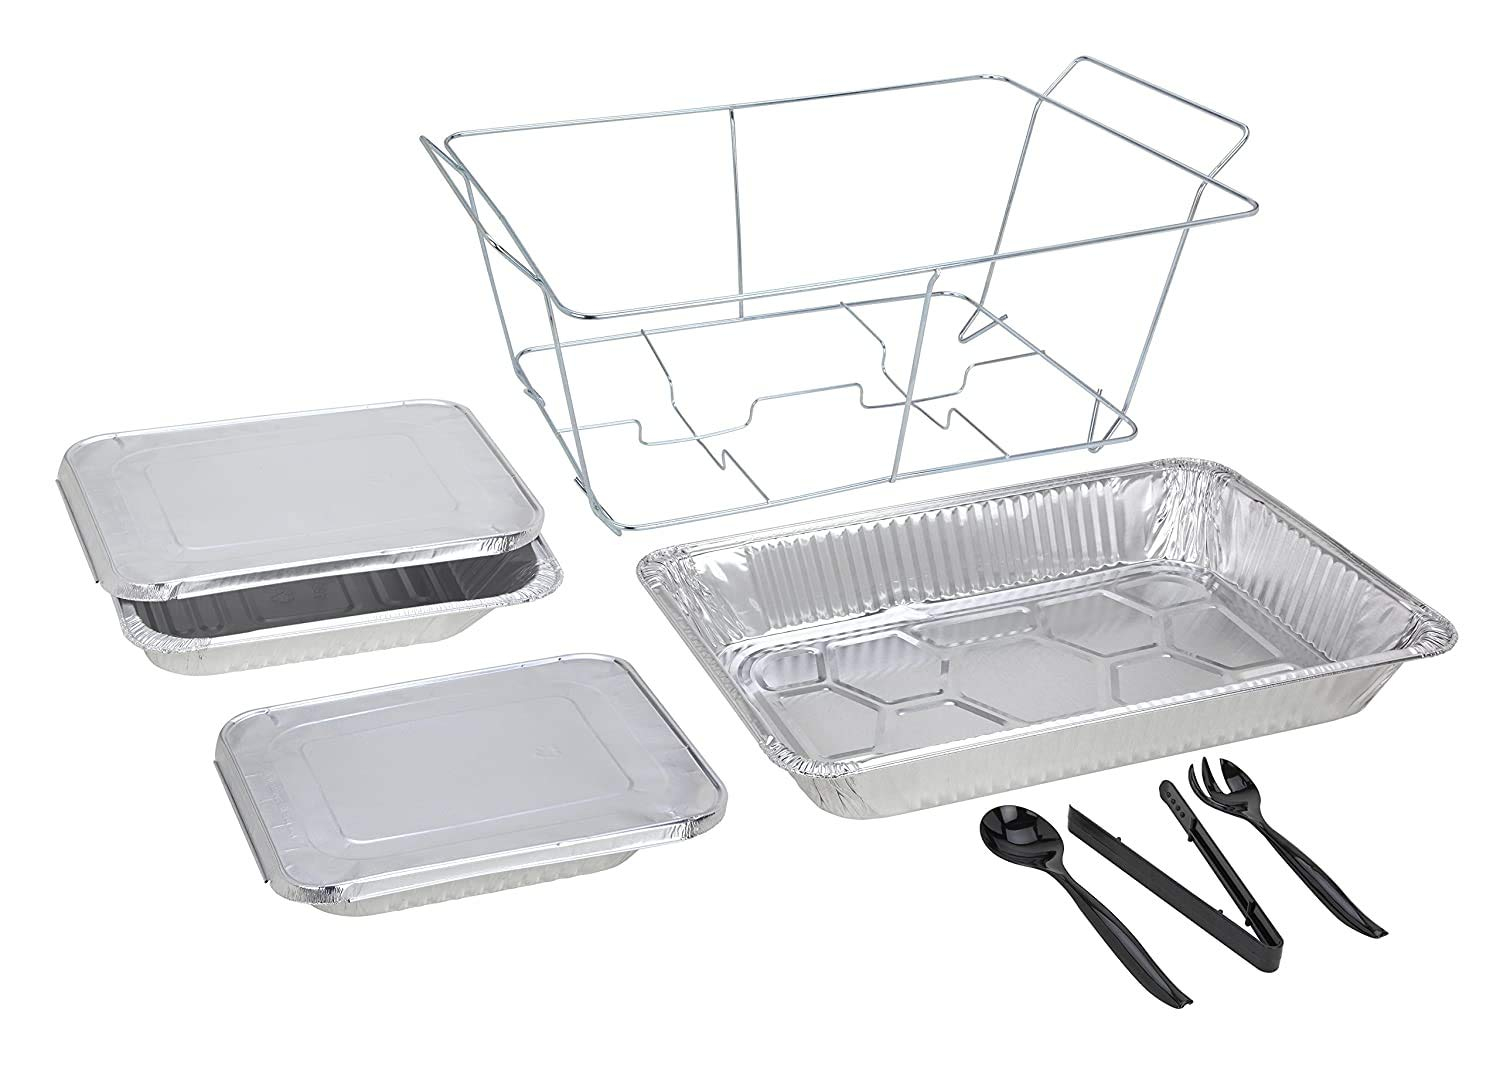 Blue Reliance REL191 Masterchef HSE 50 person All Catering Kit Aura Super Box